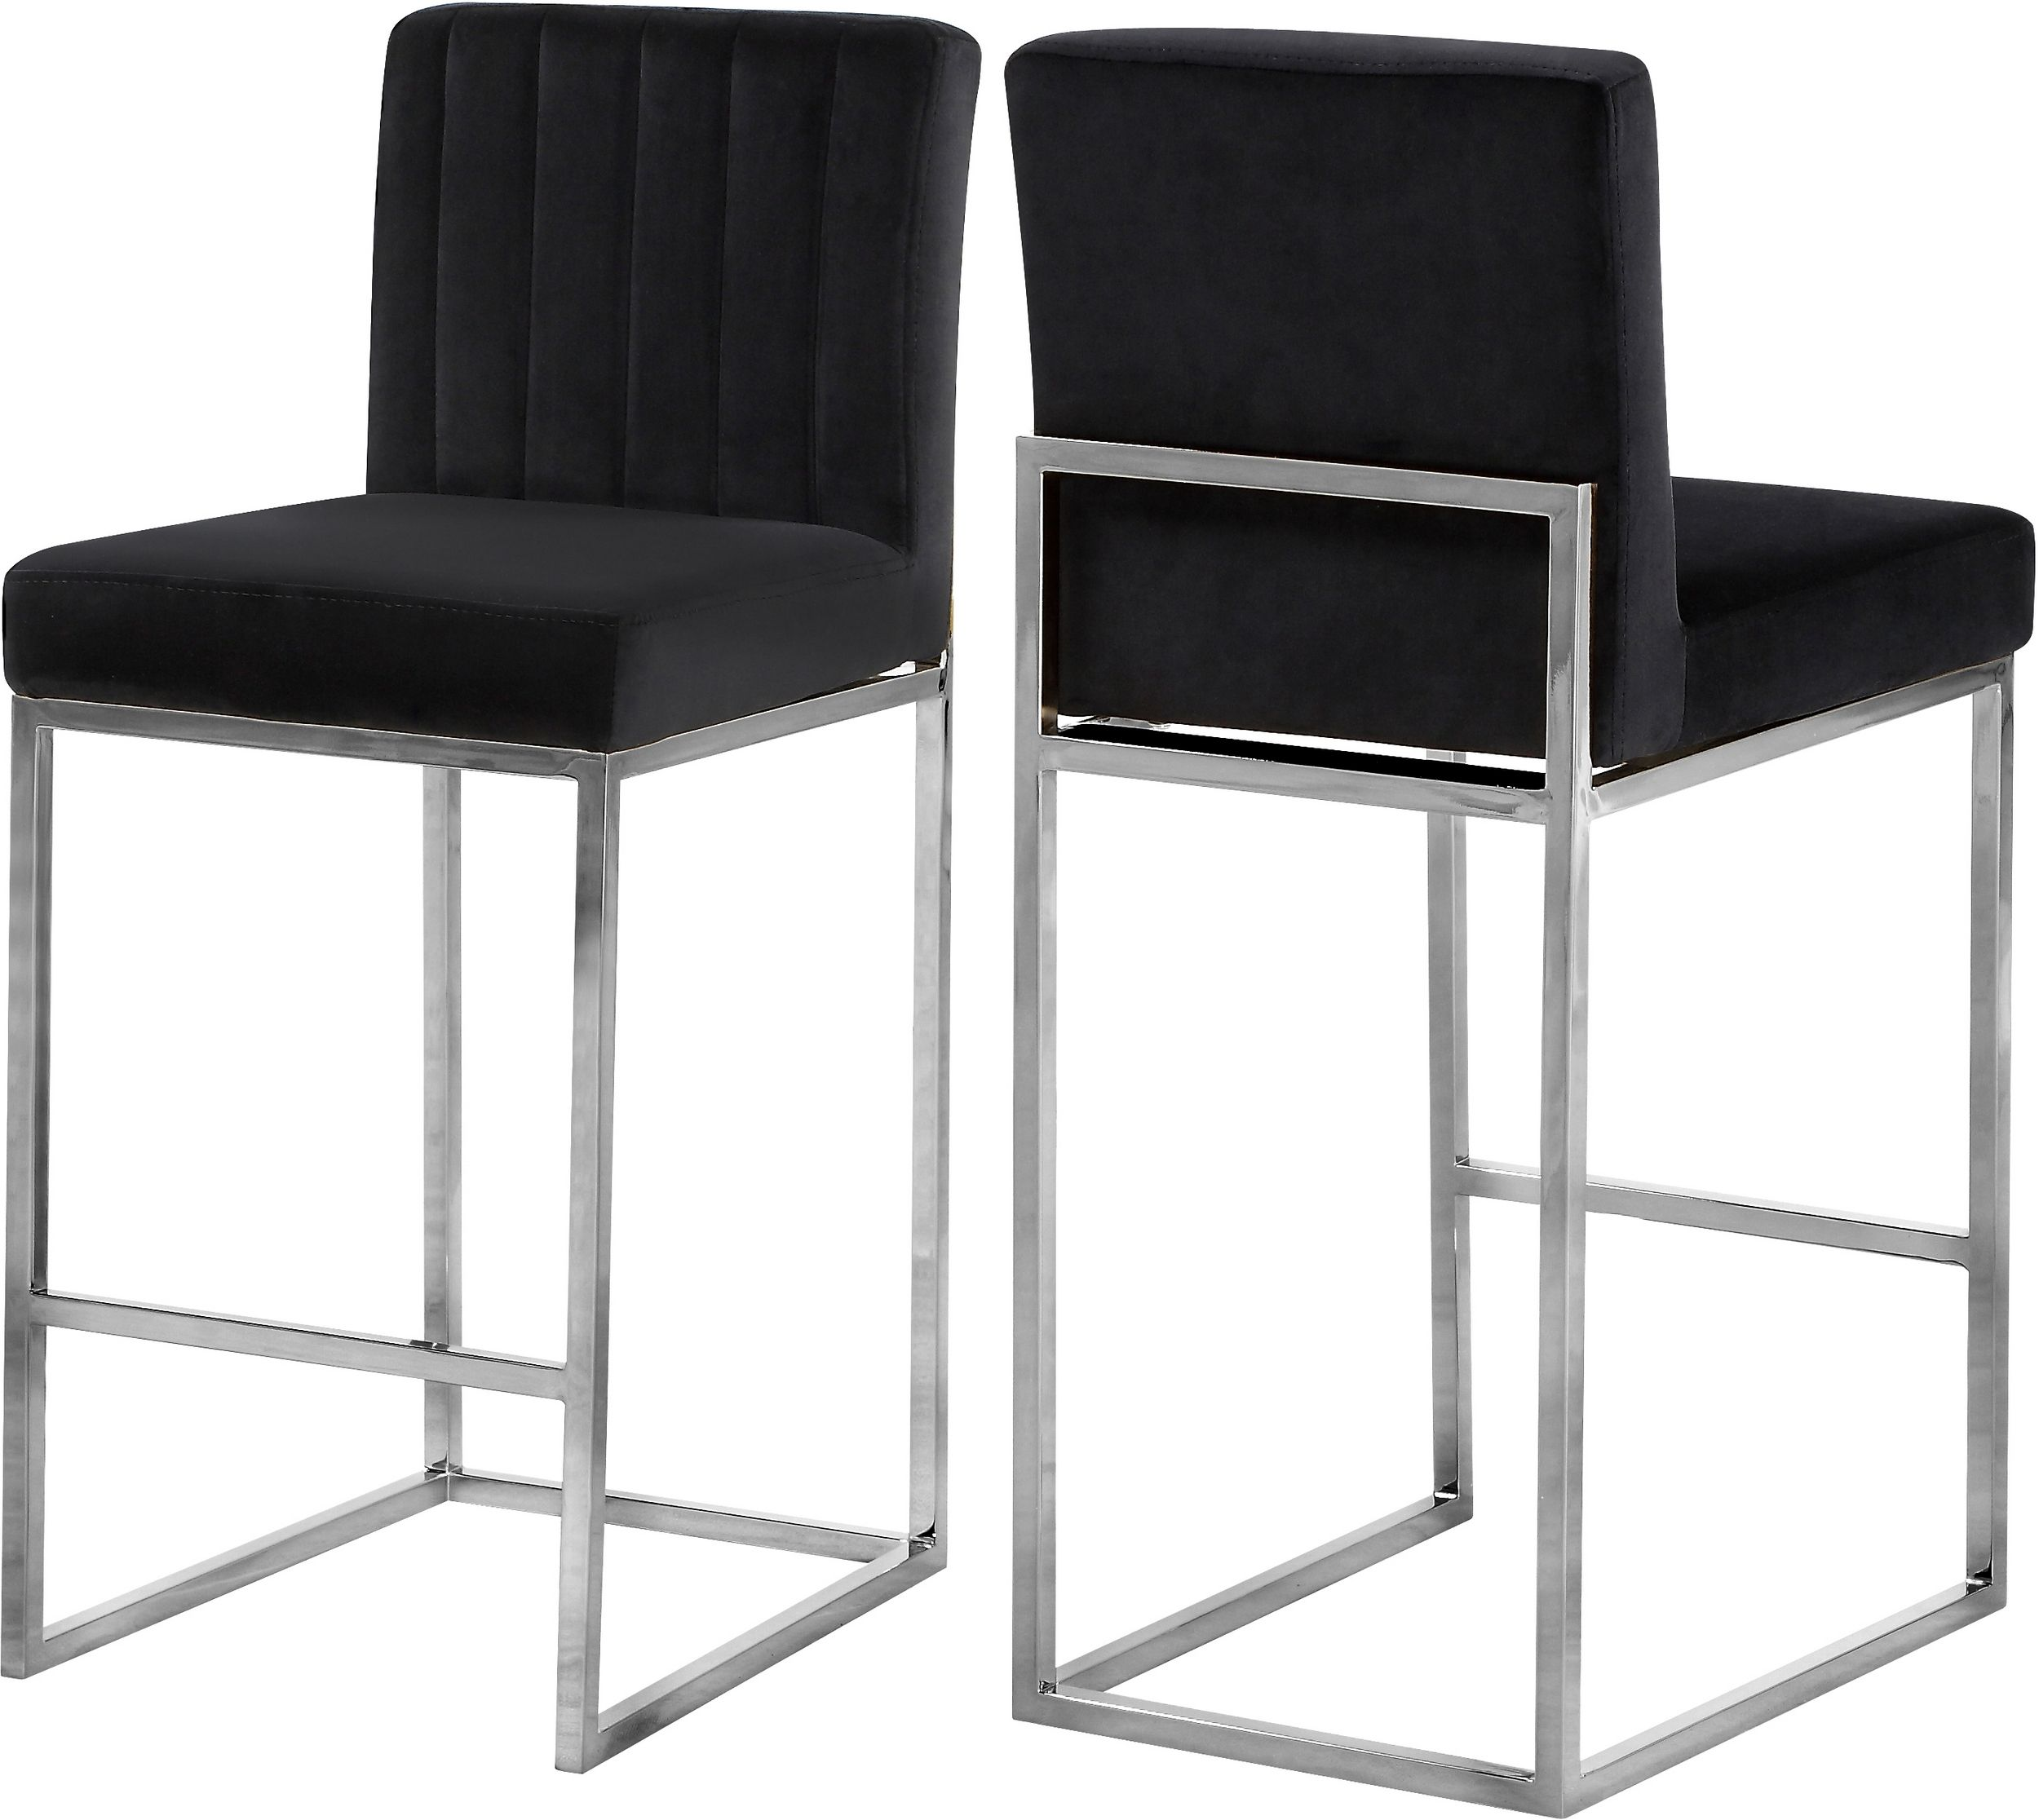 Wondrous Meridian Giselle Black Velvet Stool Reviews Goedekers Caraccident5 Cool Chair Designs And Ideas Caraccident5Info